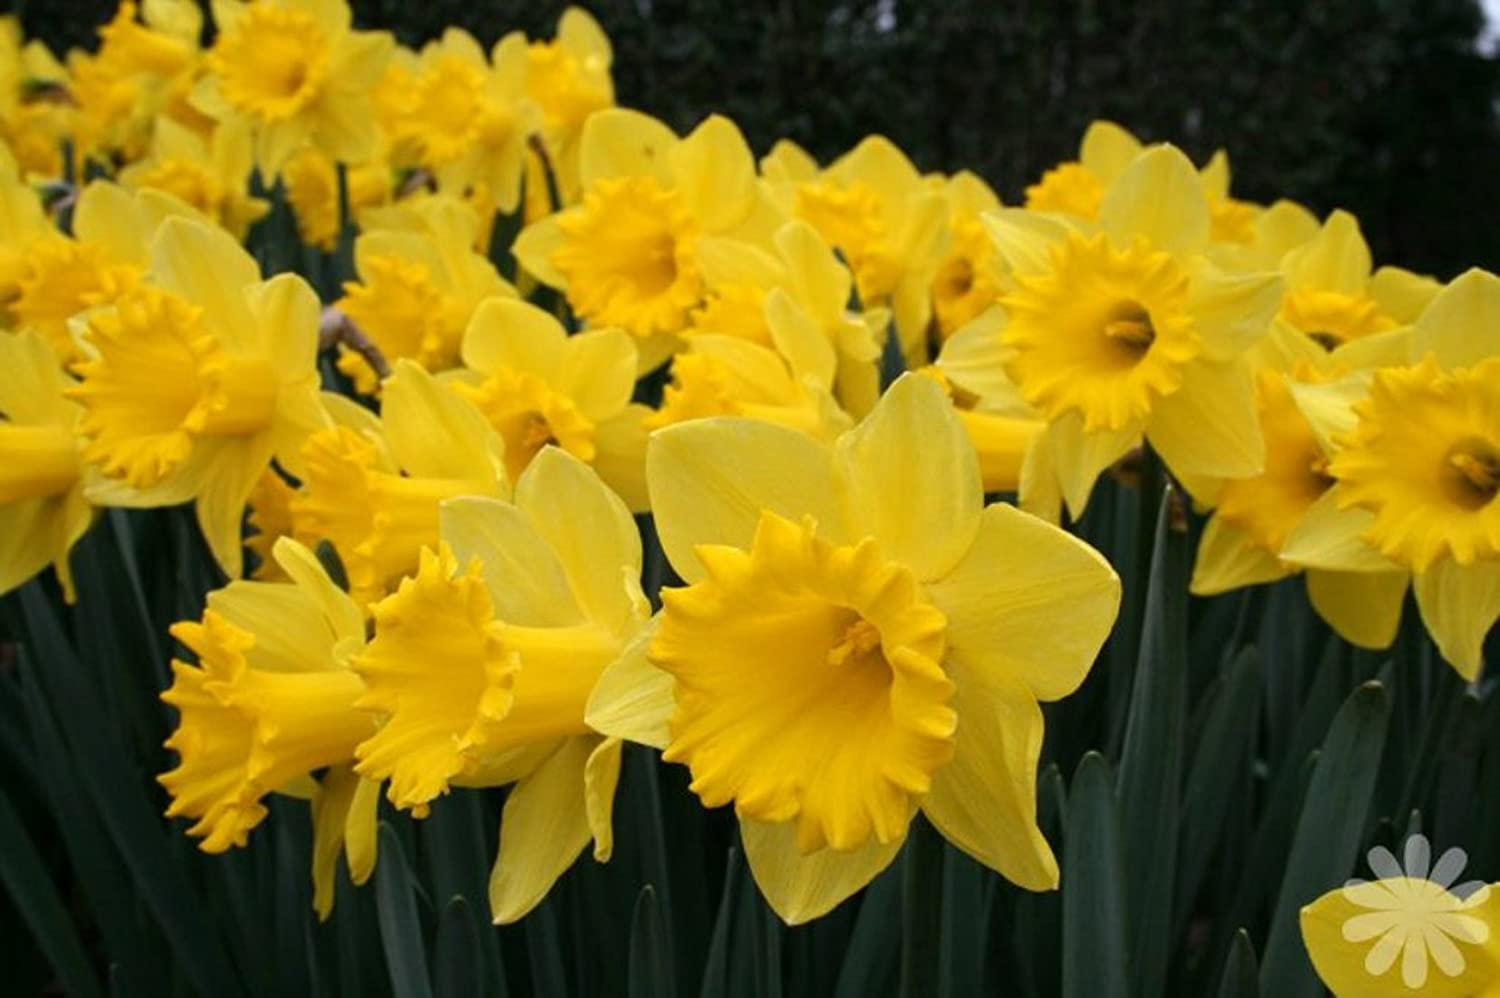 GARTHWAITE NURSERIES : - 25 KG King Alfred Trumpet Daffodil Bulbs Vivid Yellow Spring Flowering Perennial Great Value Garthwaite Nurseries®